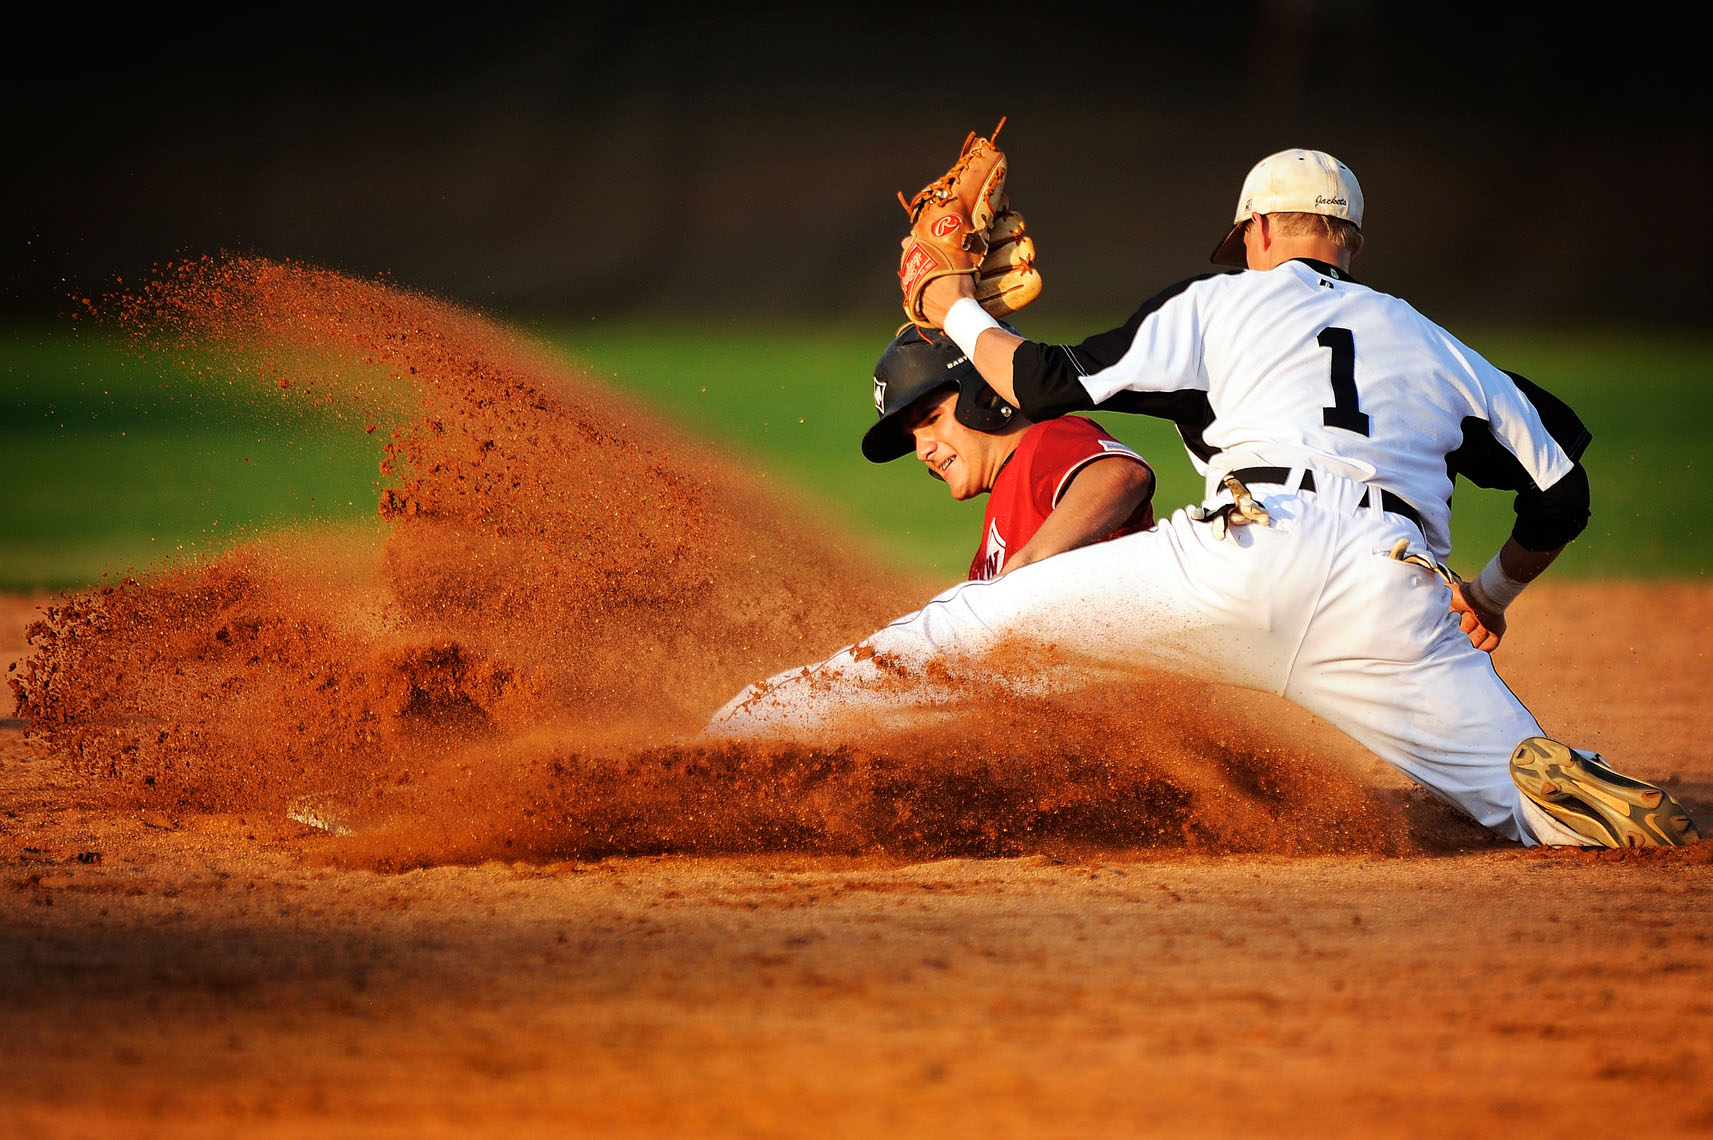 Second Base Slide